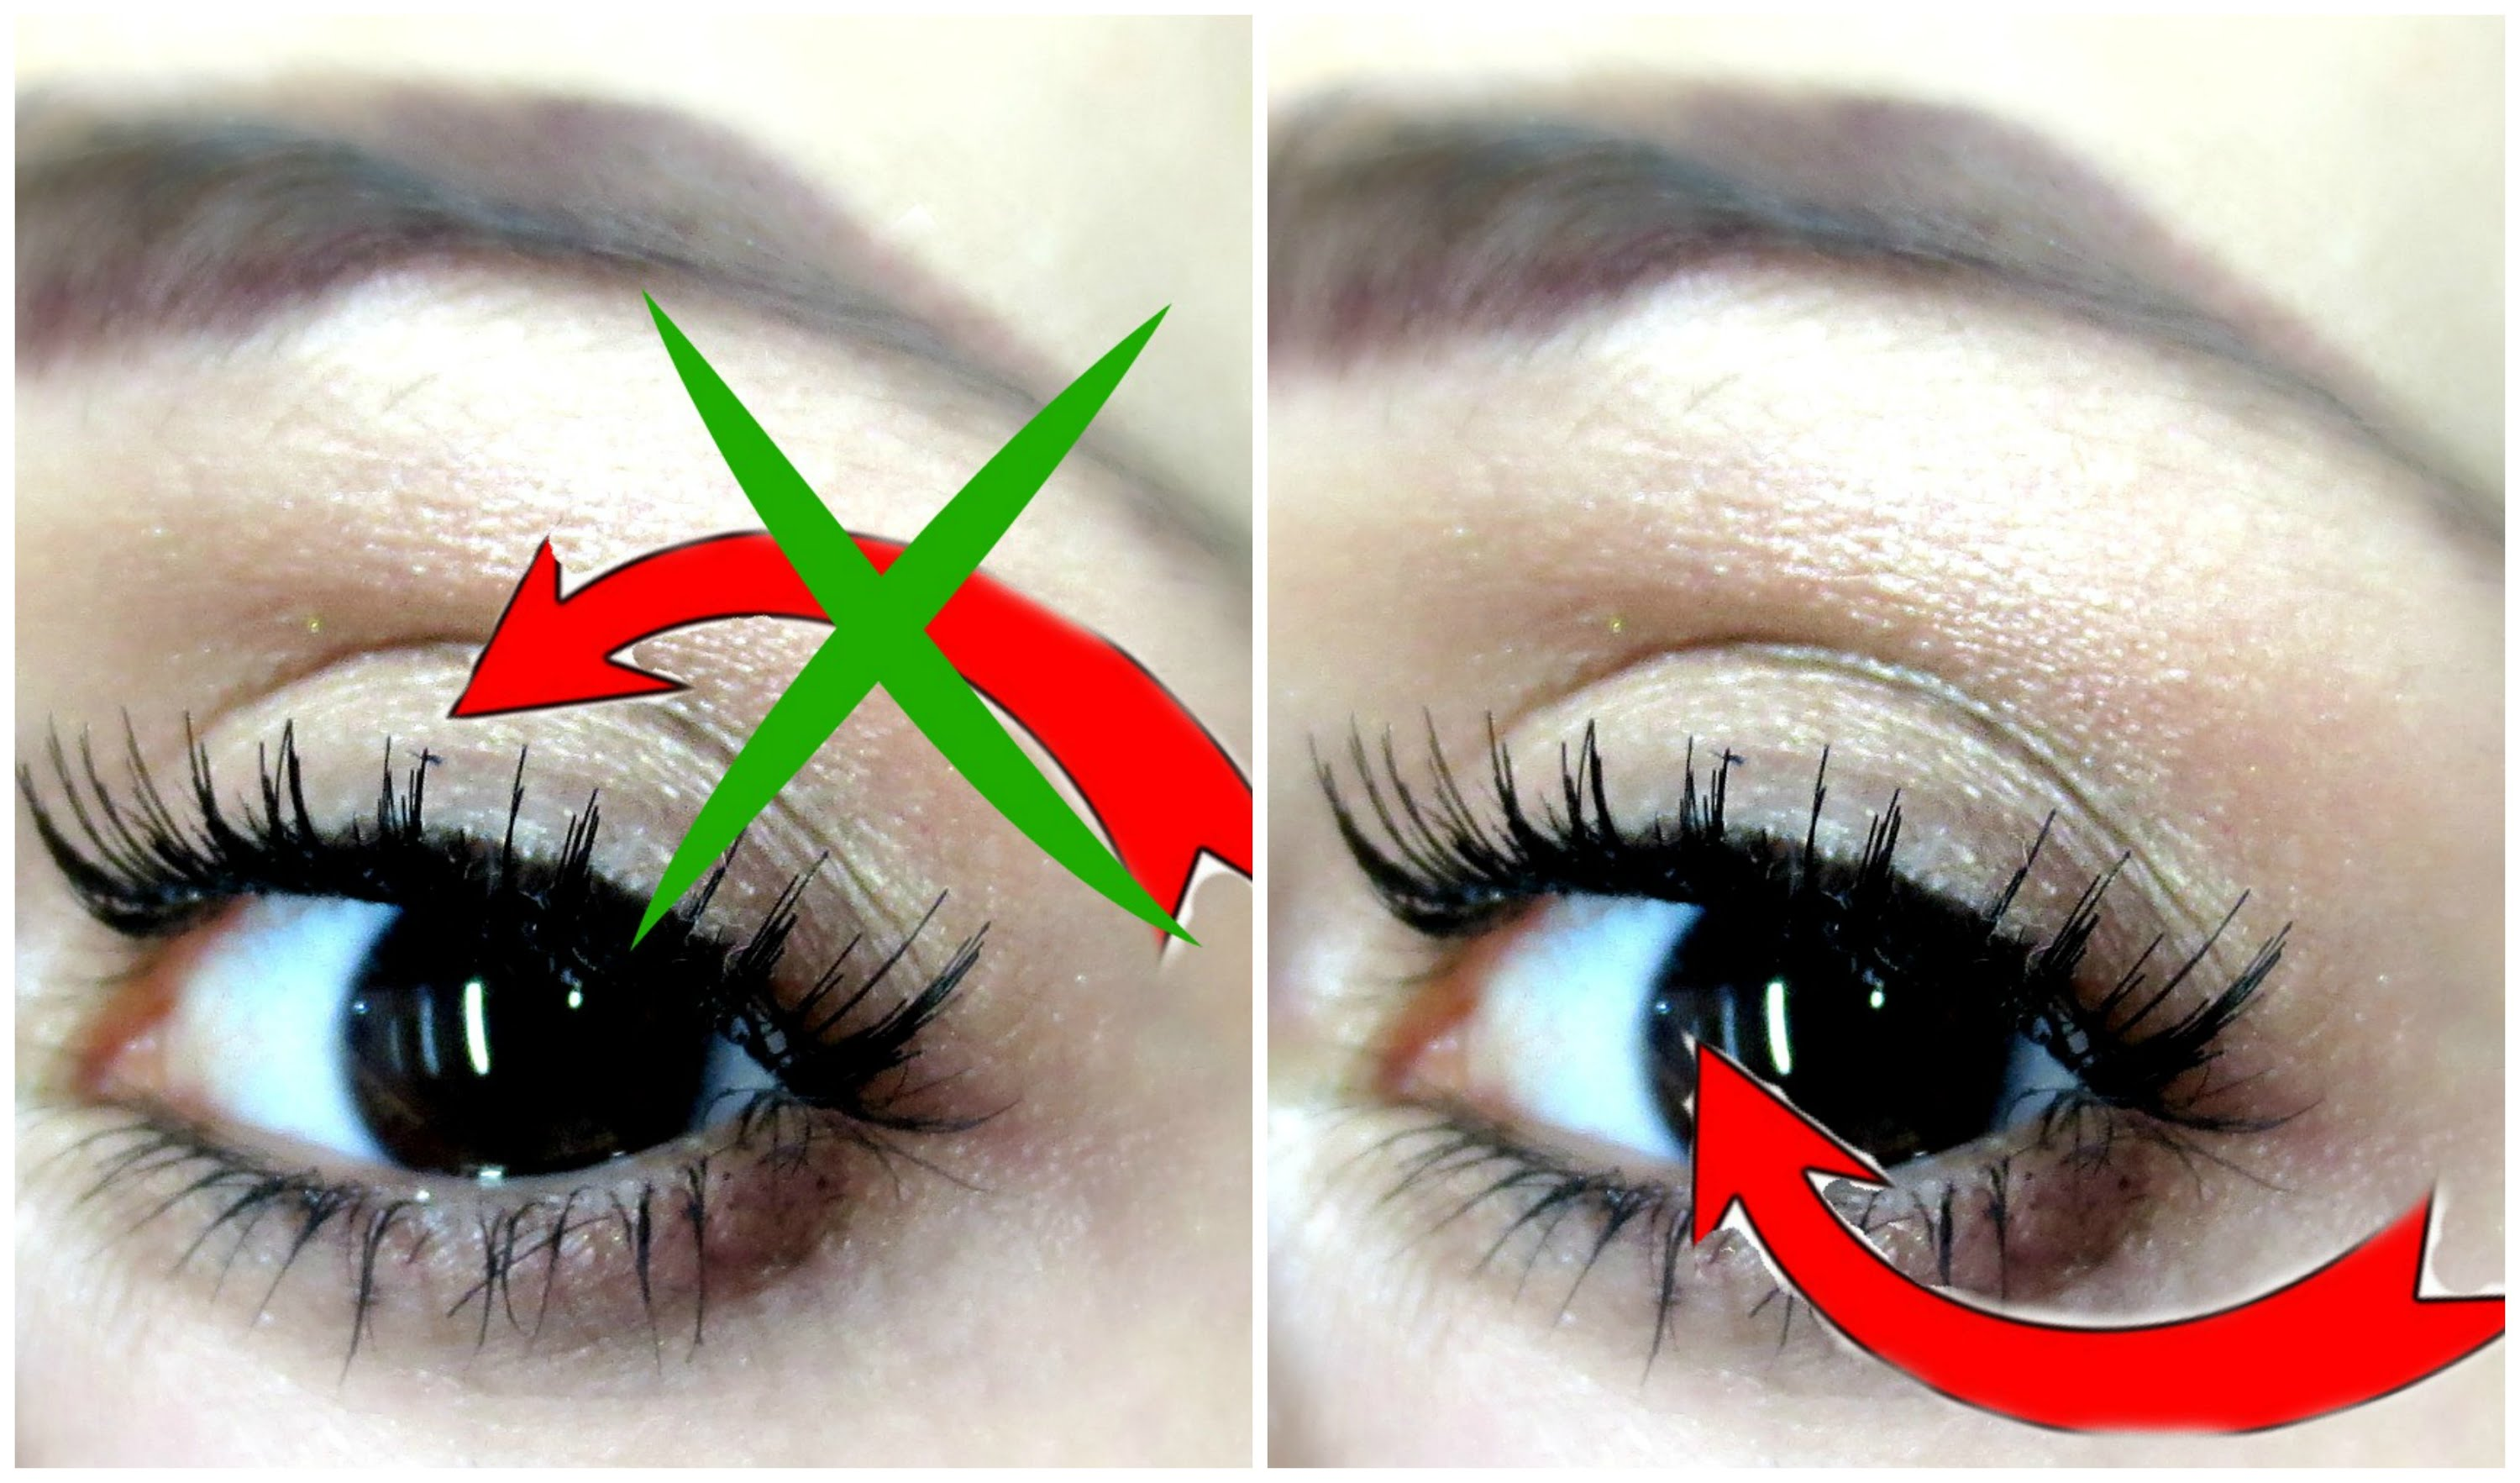 The BEST Way to Apply Fake Eyelashes